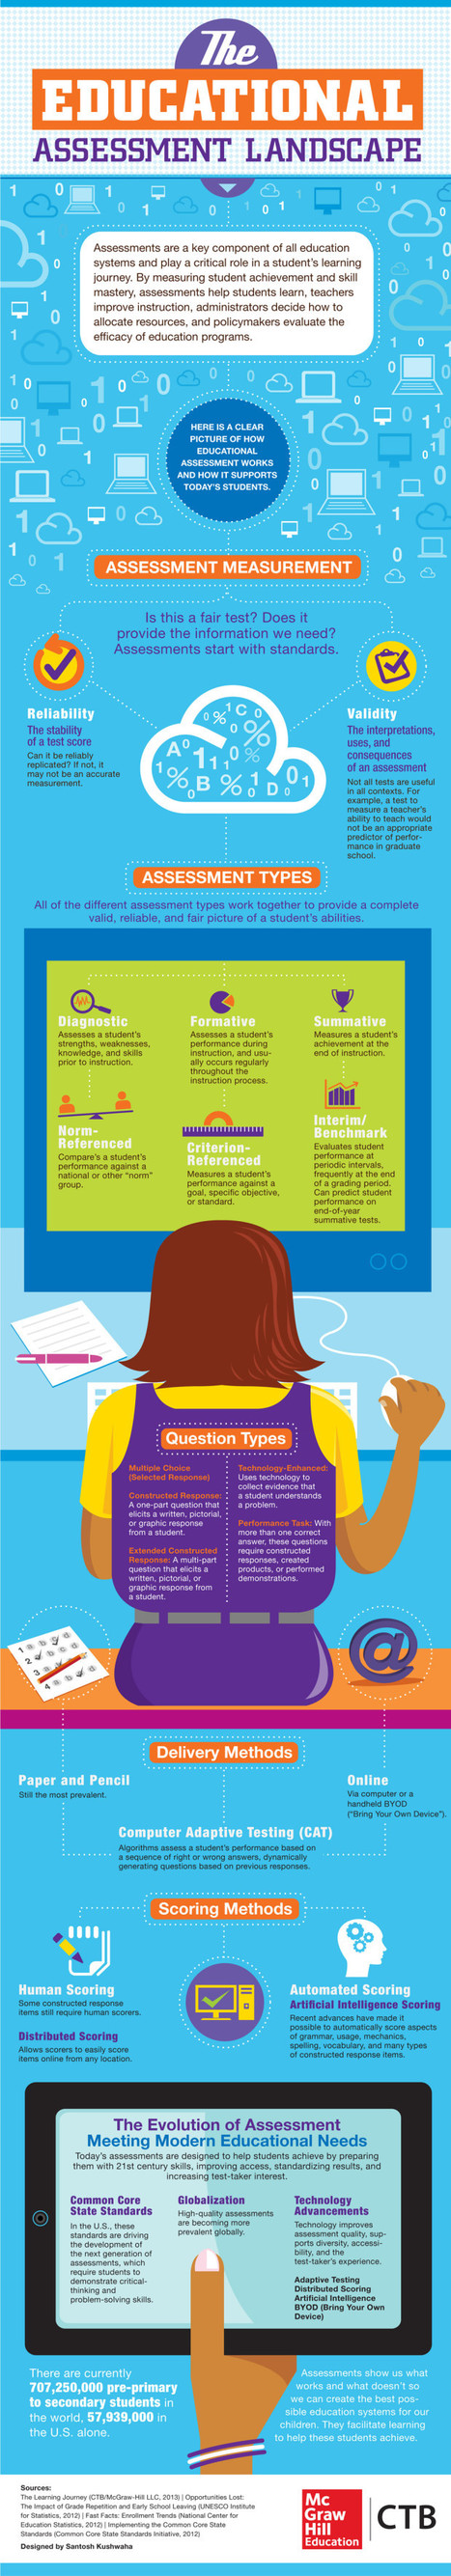 Building Meaningful Assessments [INFOGRAPHIC] | ENGLISH LEARNING 2.0 | Scoop.it